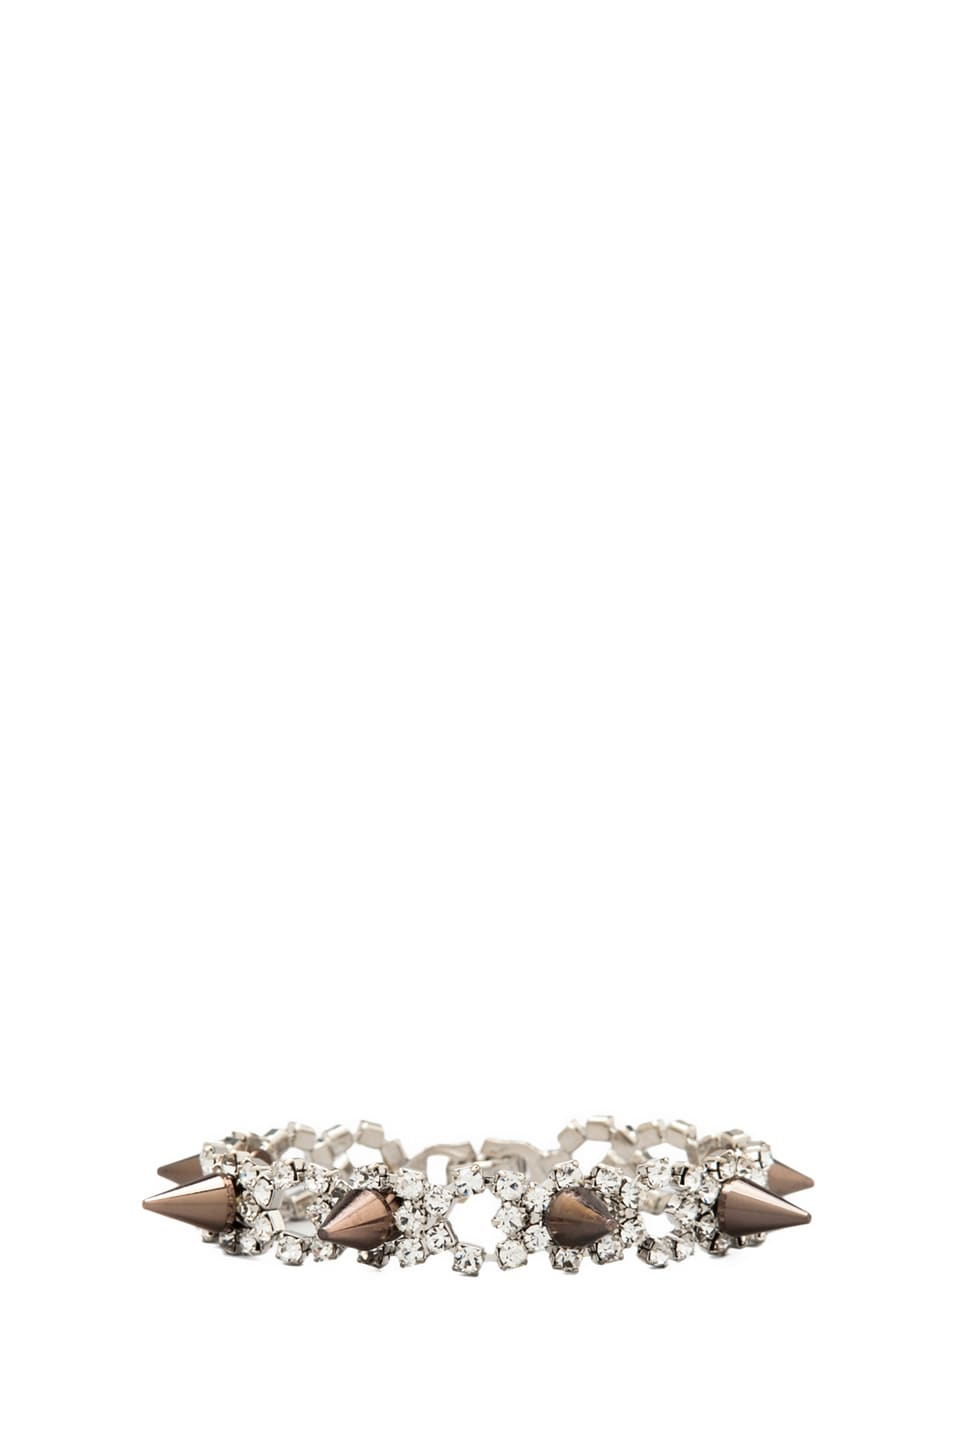 JOOMI LIM Crystal & Spike Bracelet in Crystal/Brown Spikes